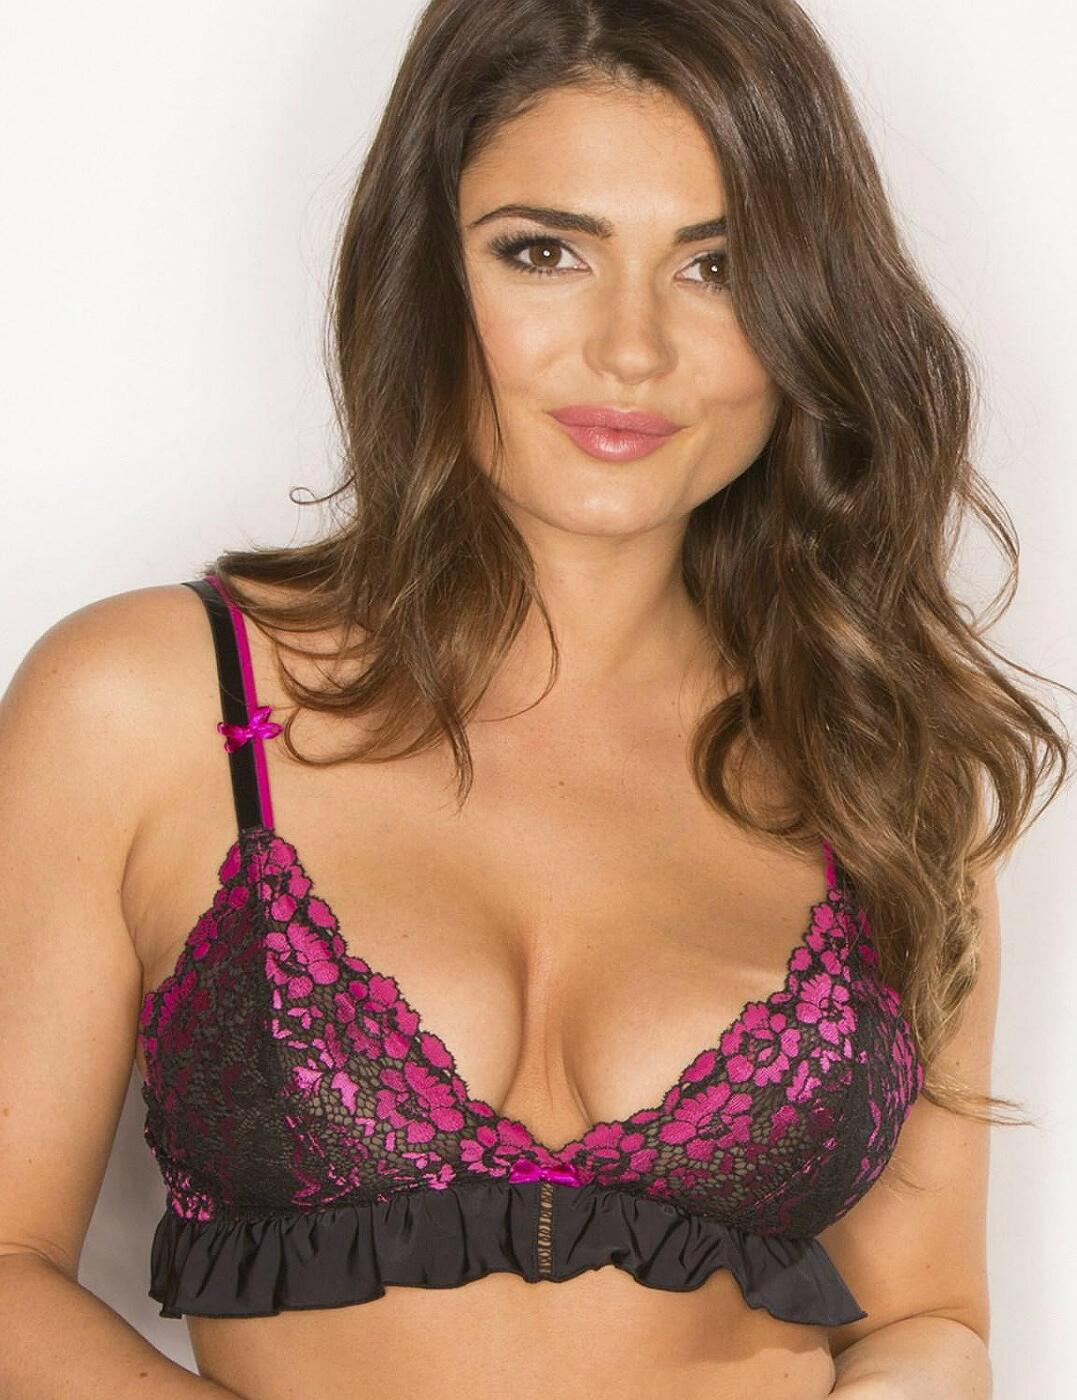 44010 Pour Moi Fever Bralette Bra Top - 44010 Black/Rose